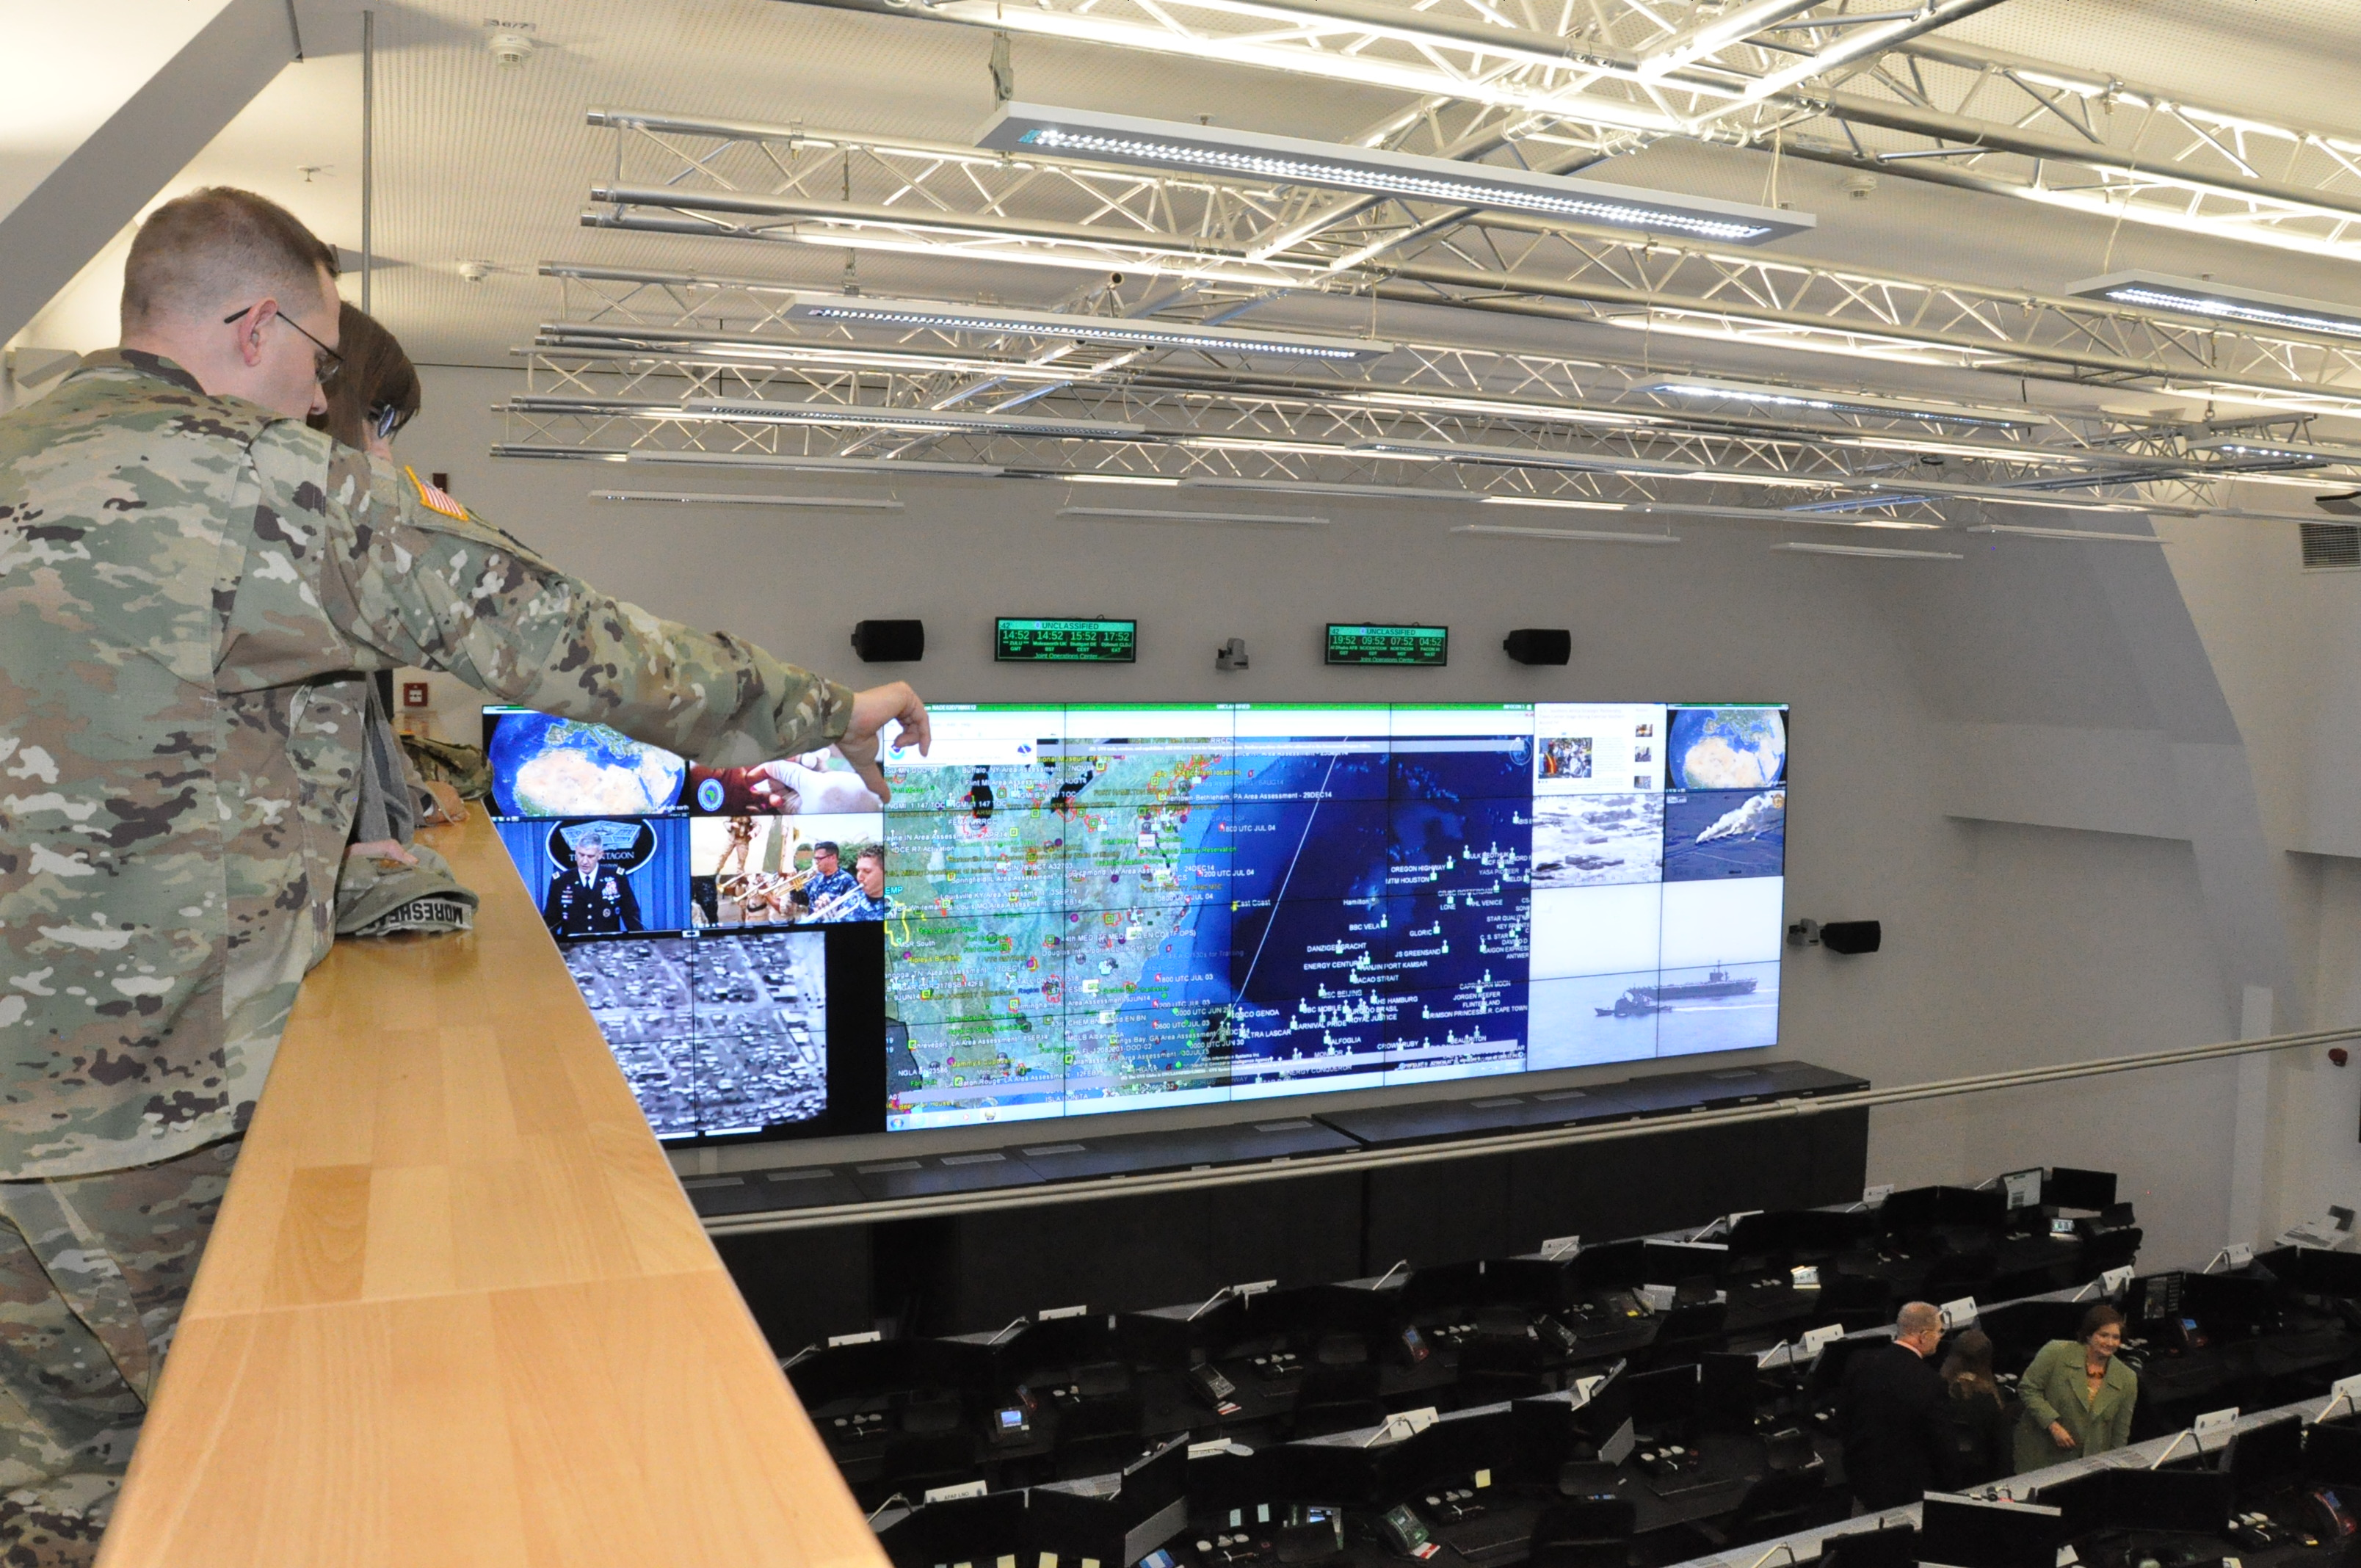 From the catwalk – AFRICOM staff get a bird's eye view inside AFRICOM's new joint operations center during open house event, Feb. 5, 2016, U.S. Army Garrison Stuttgart, Germany. (U.S. Africa Command photo by Brenda Law/RELEASED)